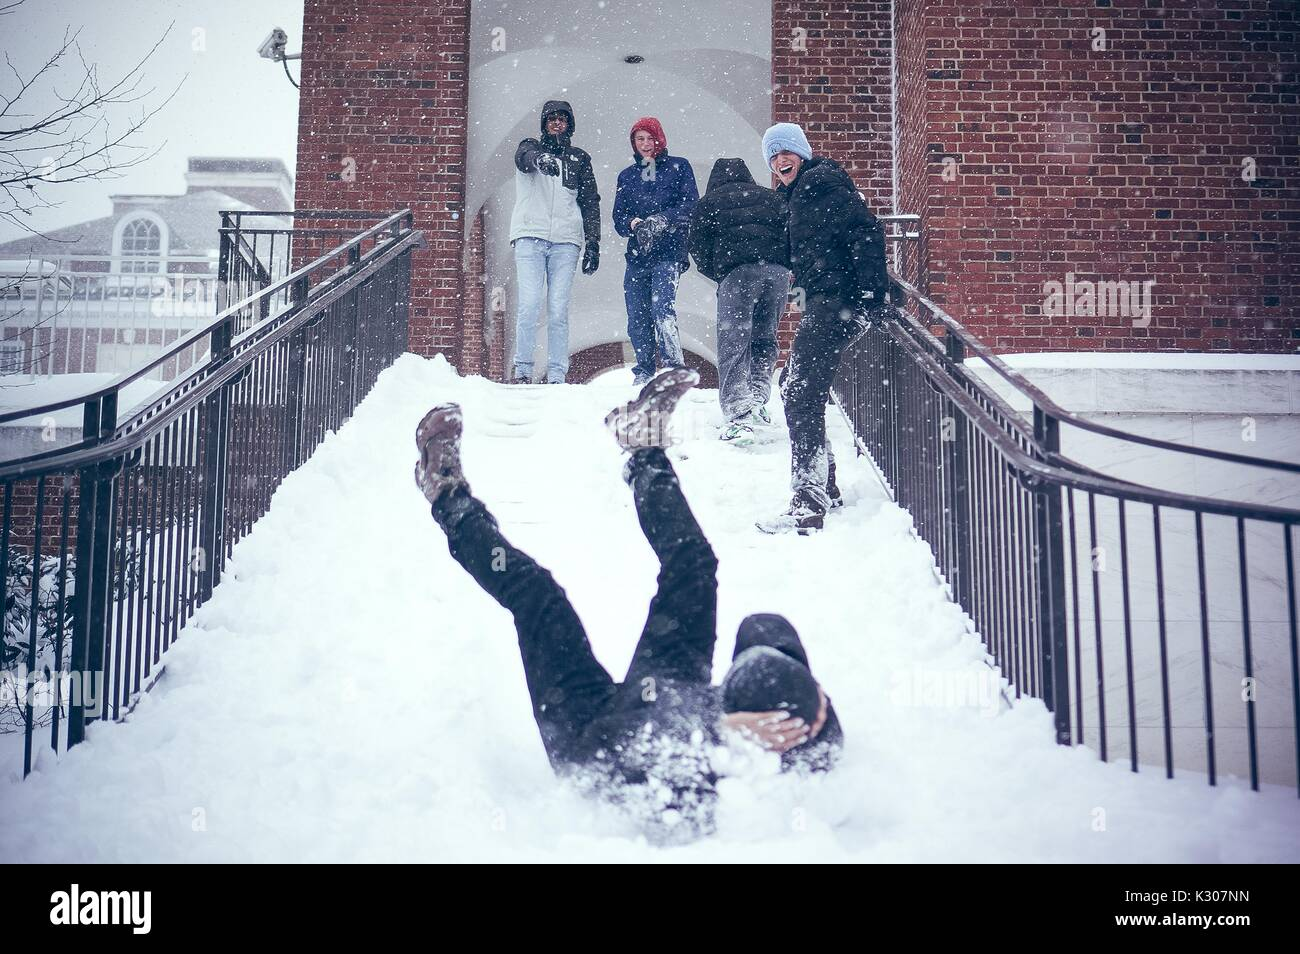 A student slides down a snowy staircases with legs in the air and arms covering his head, while other students in snow gear smile and cheer at the top of the stairs, on a snow day at Johns Hopkins University, Baltimore, Maryland, 2016. - Stock Image